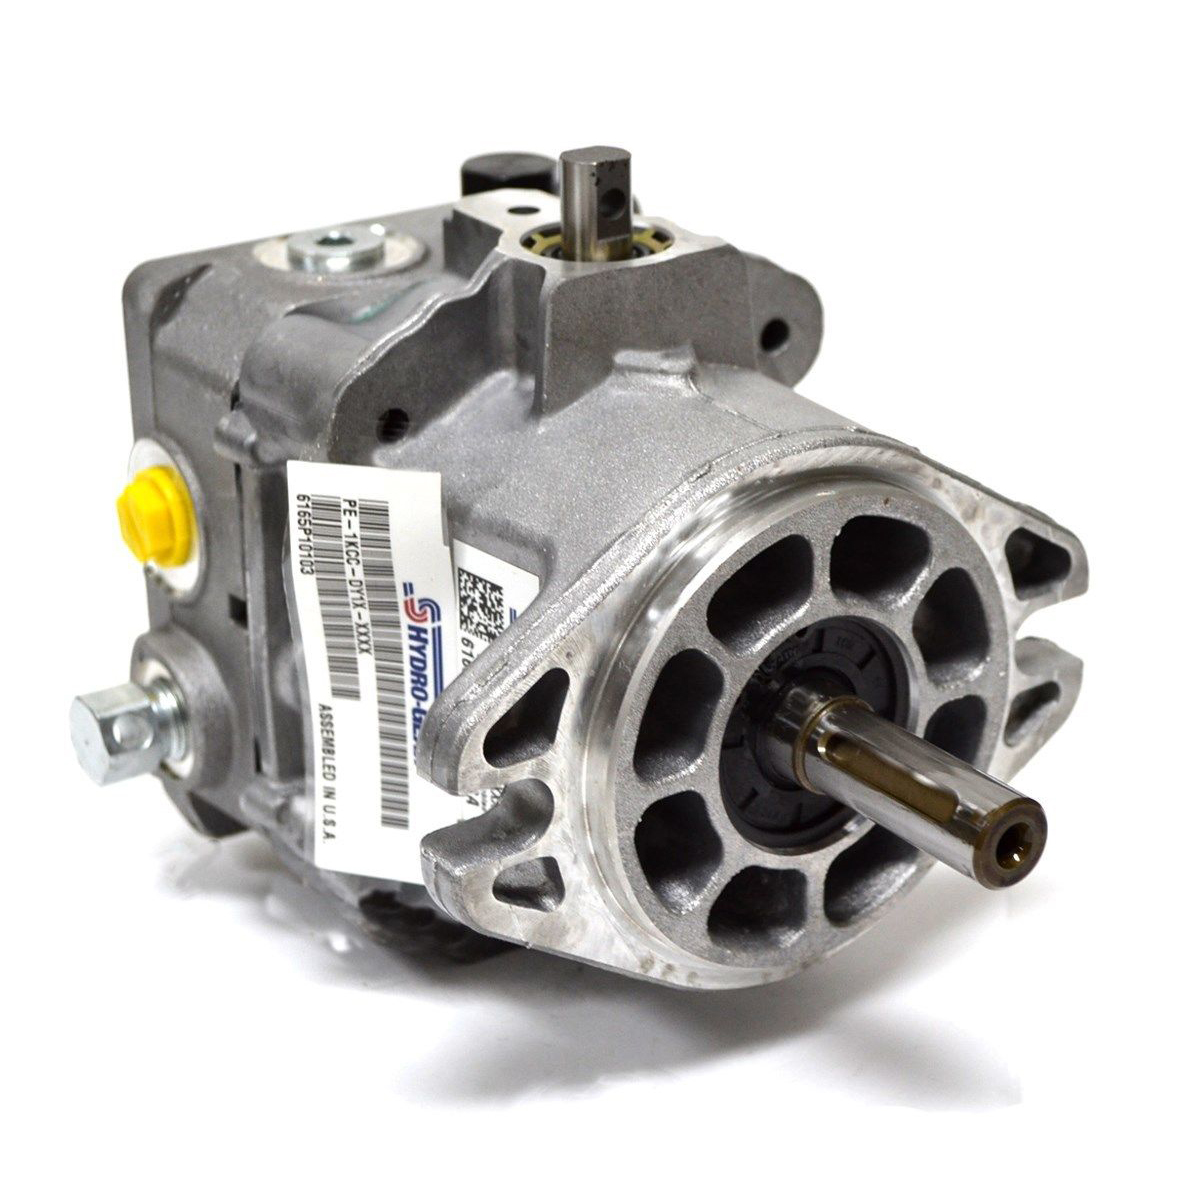 Hydro-Gear Pump 10cc for Dixie Chopper, Hustler, Scag BDP-10A-316, PG-1KCC-DY1X-XXXX